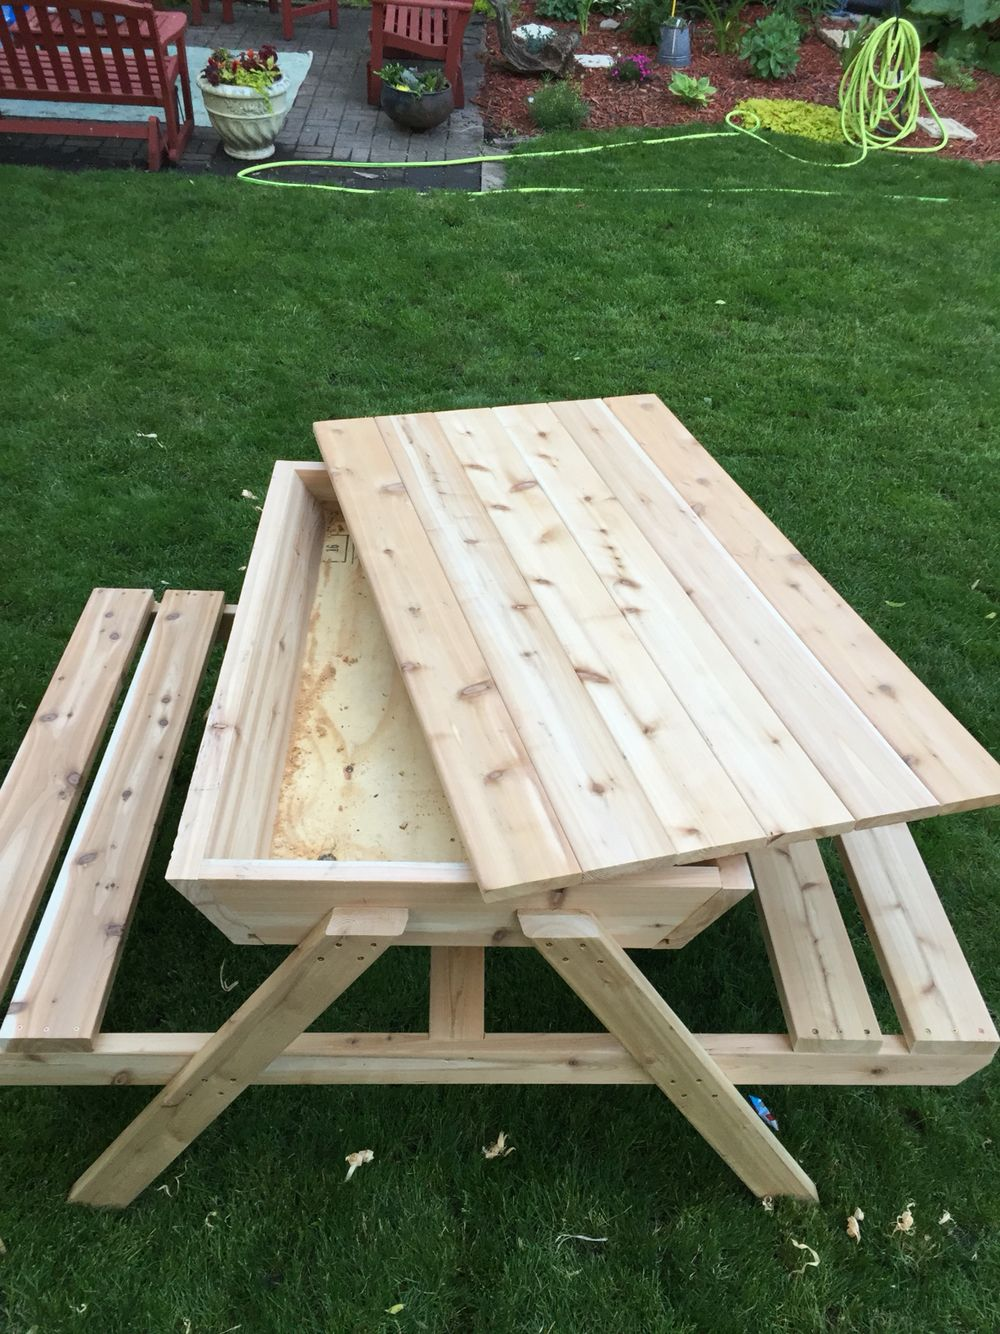 Kids Picnic Table Sand Box Cedar Picnic Table Ice Chest Picnic Tables Keep The Cats Out